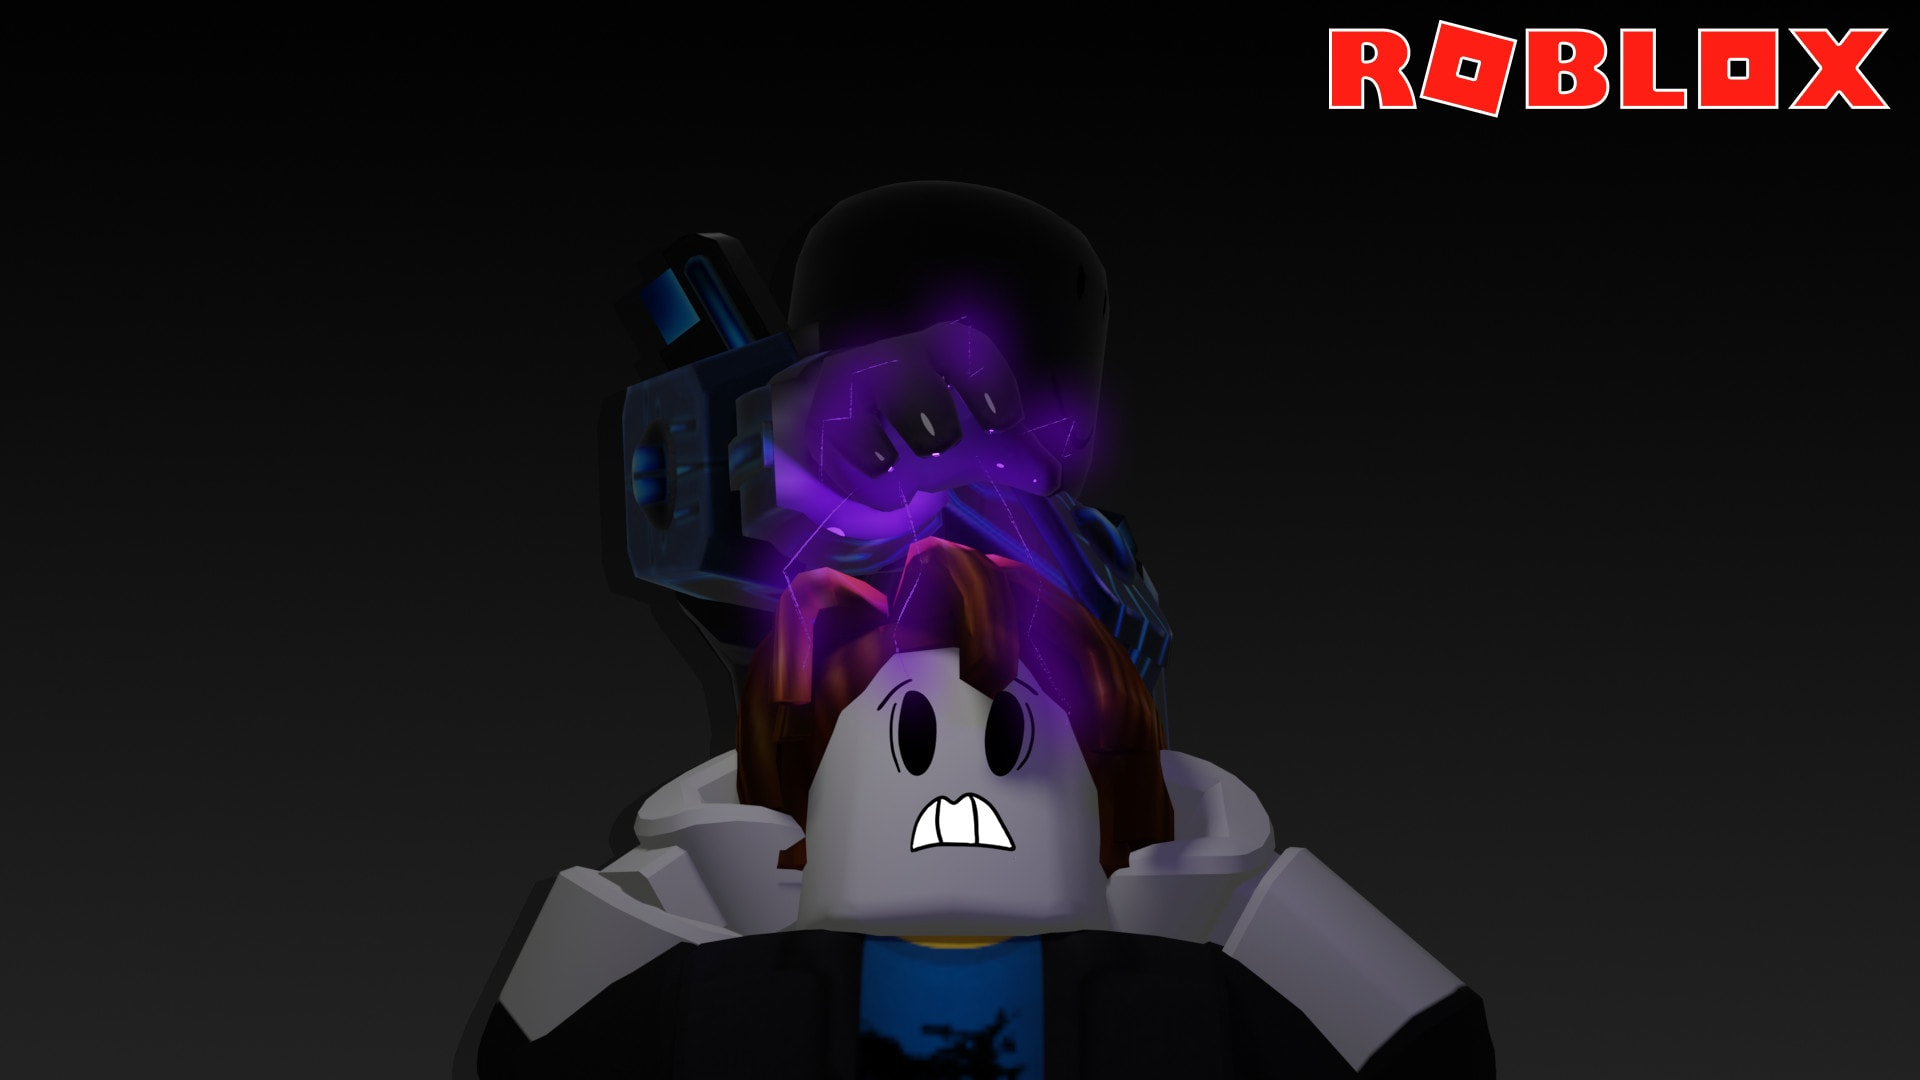 Cool Pics In Roblox